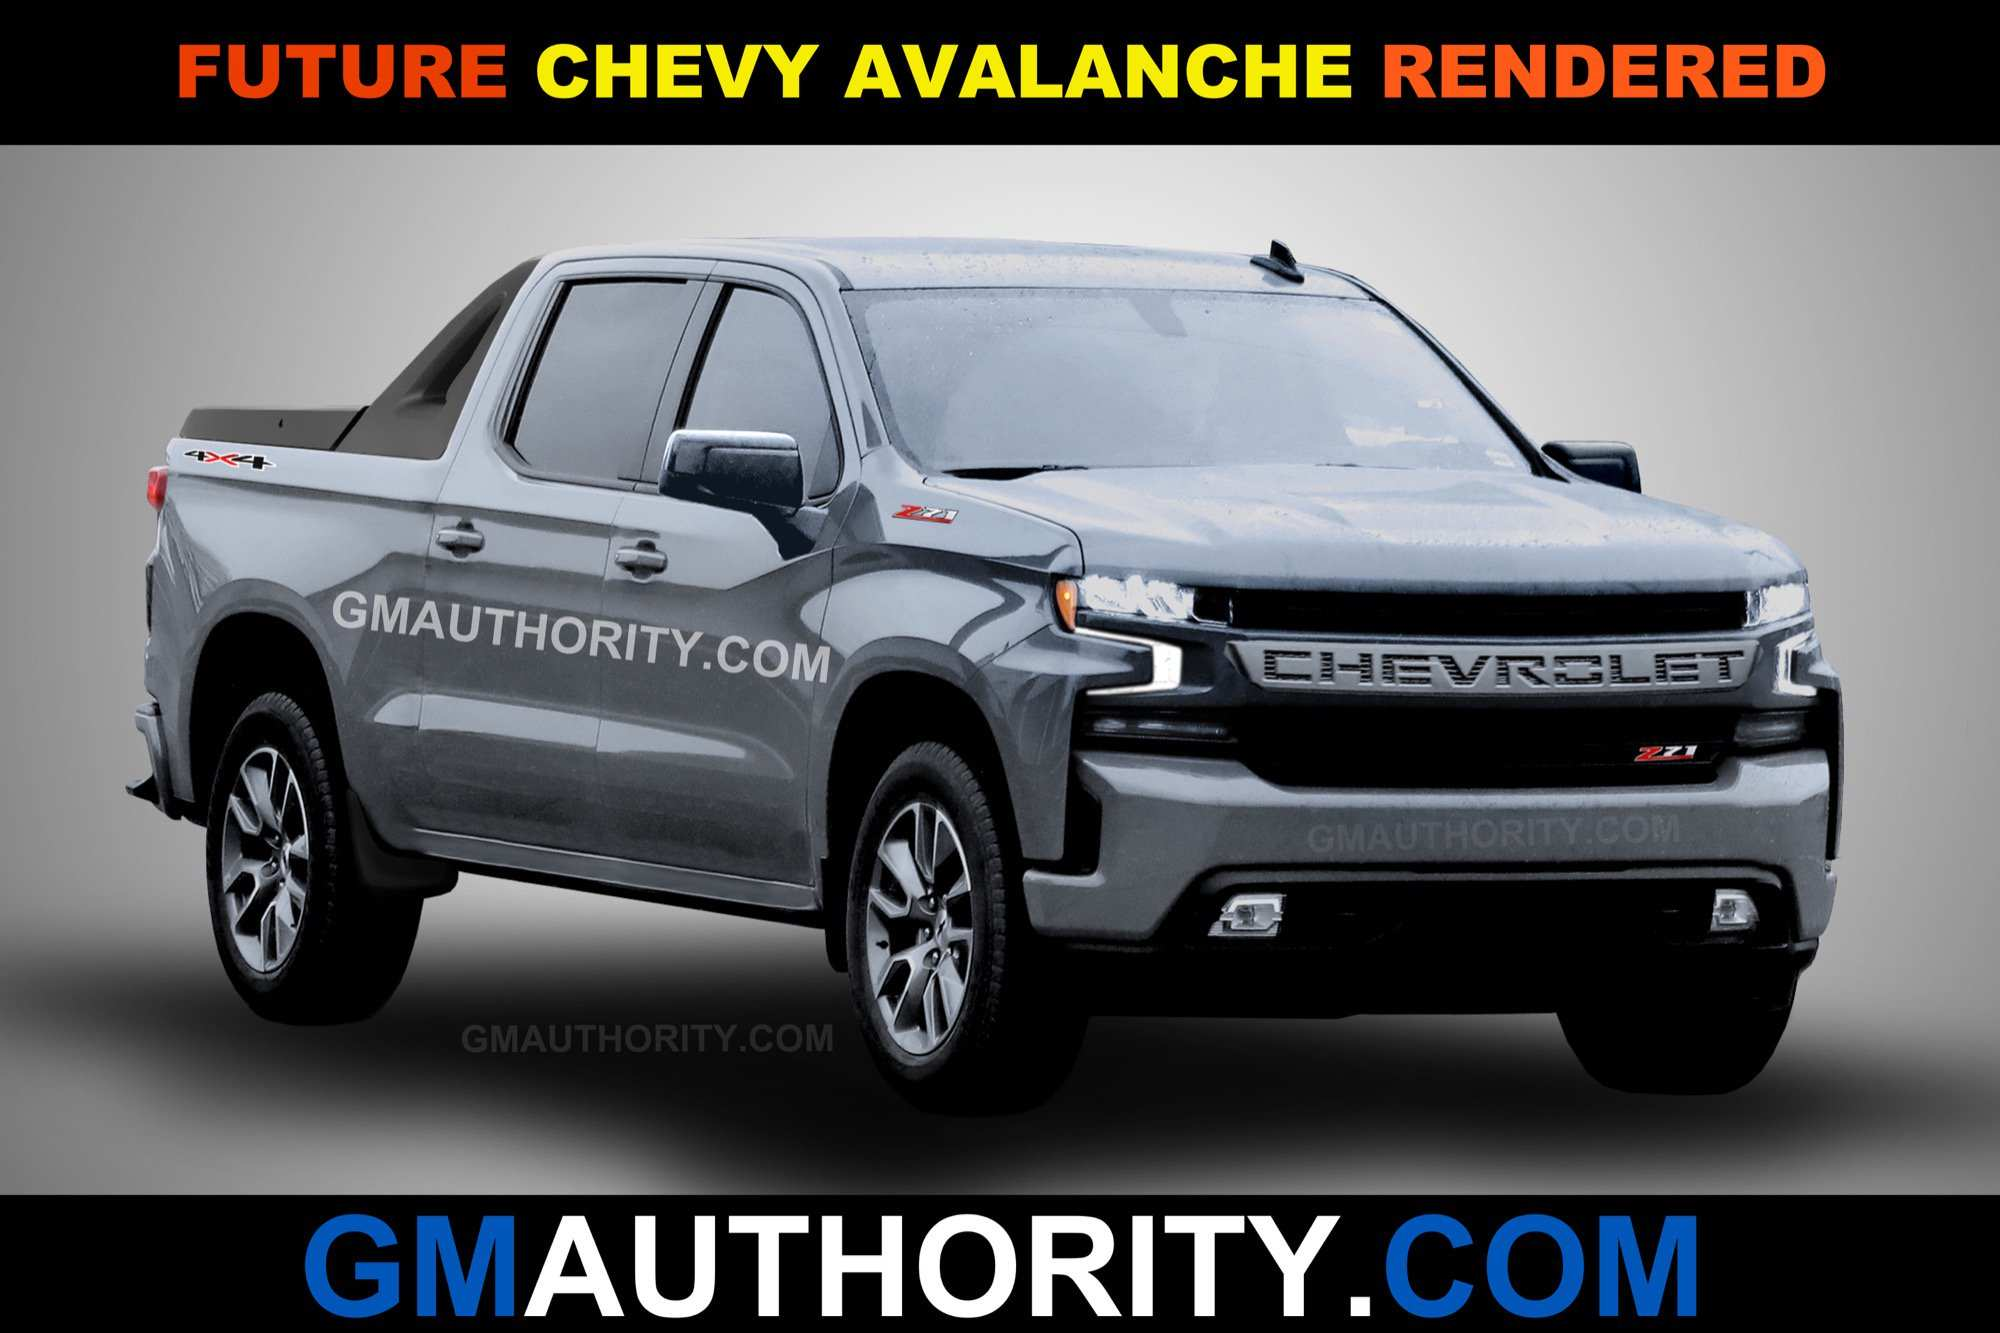 50 All New 2020 Chevy Avalanche Interior